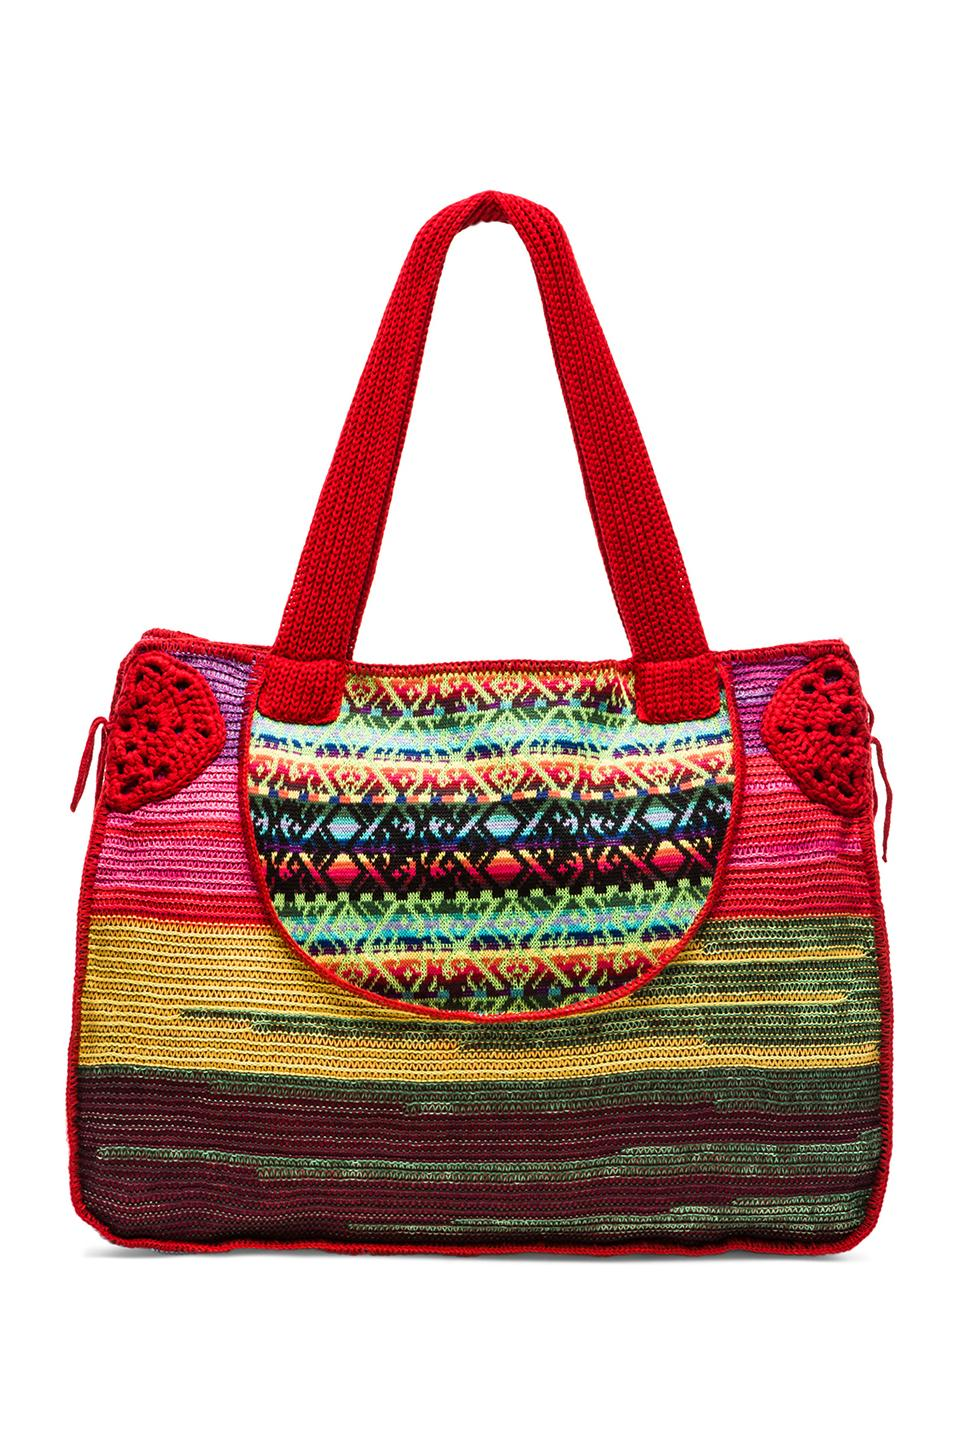 Cecilia Prado Beach Bag in Pink Multi